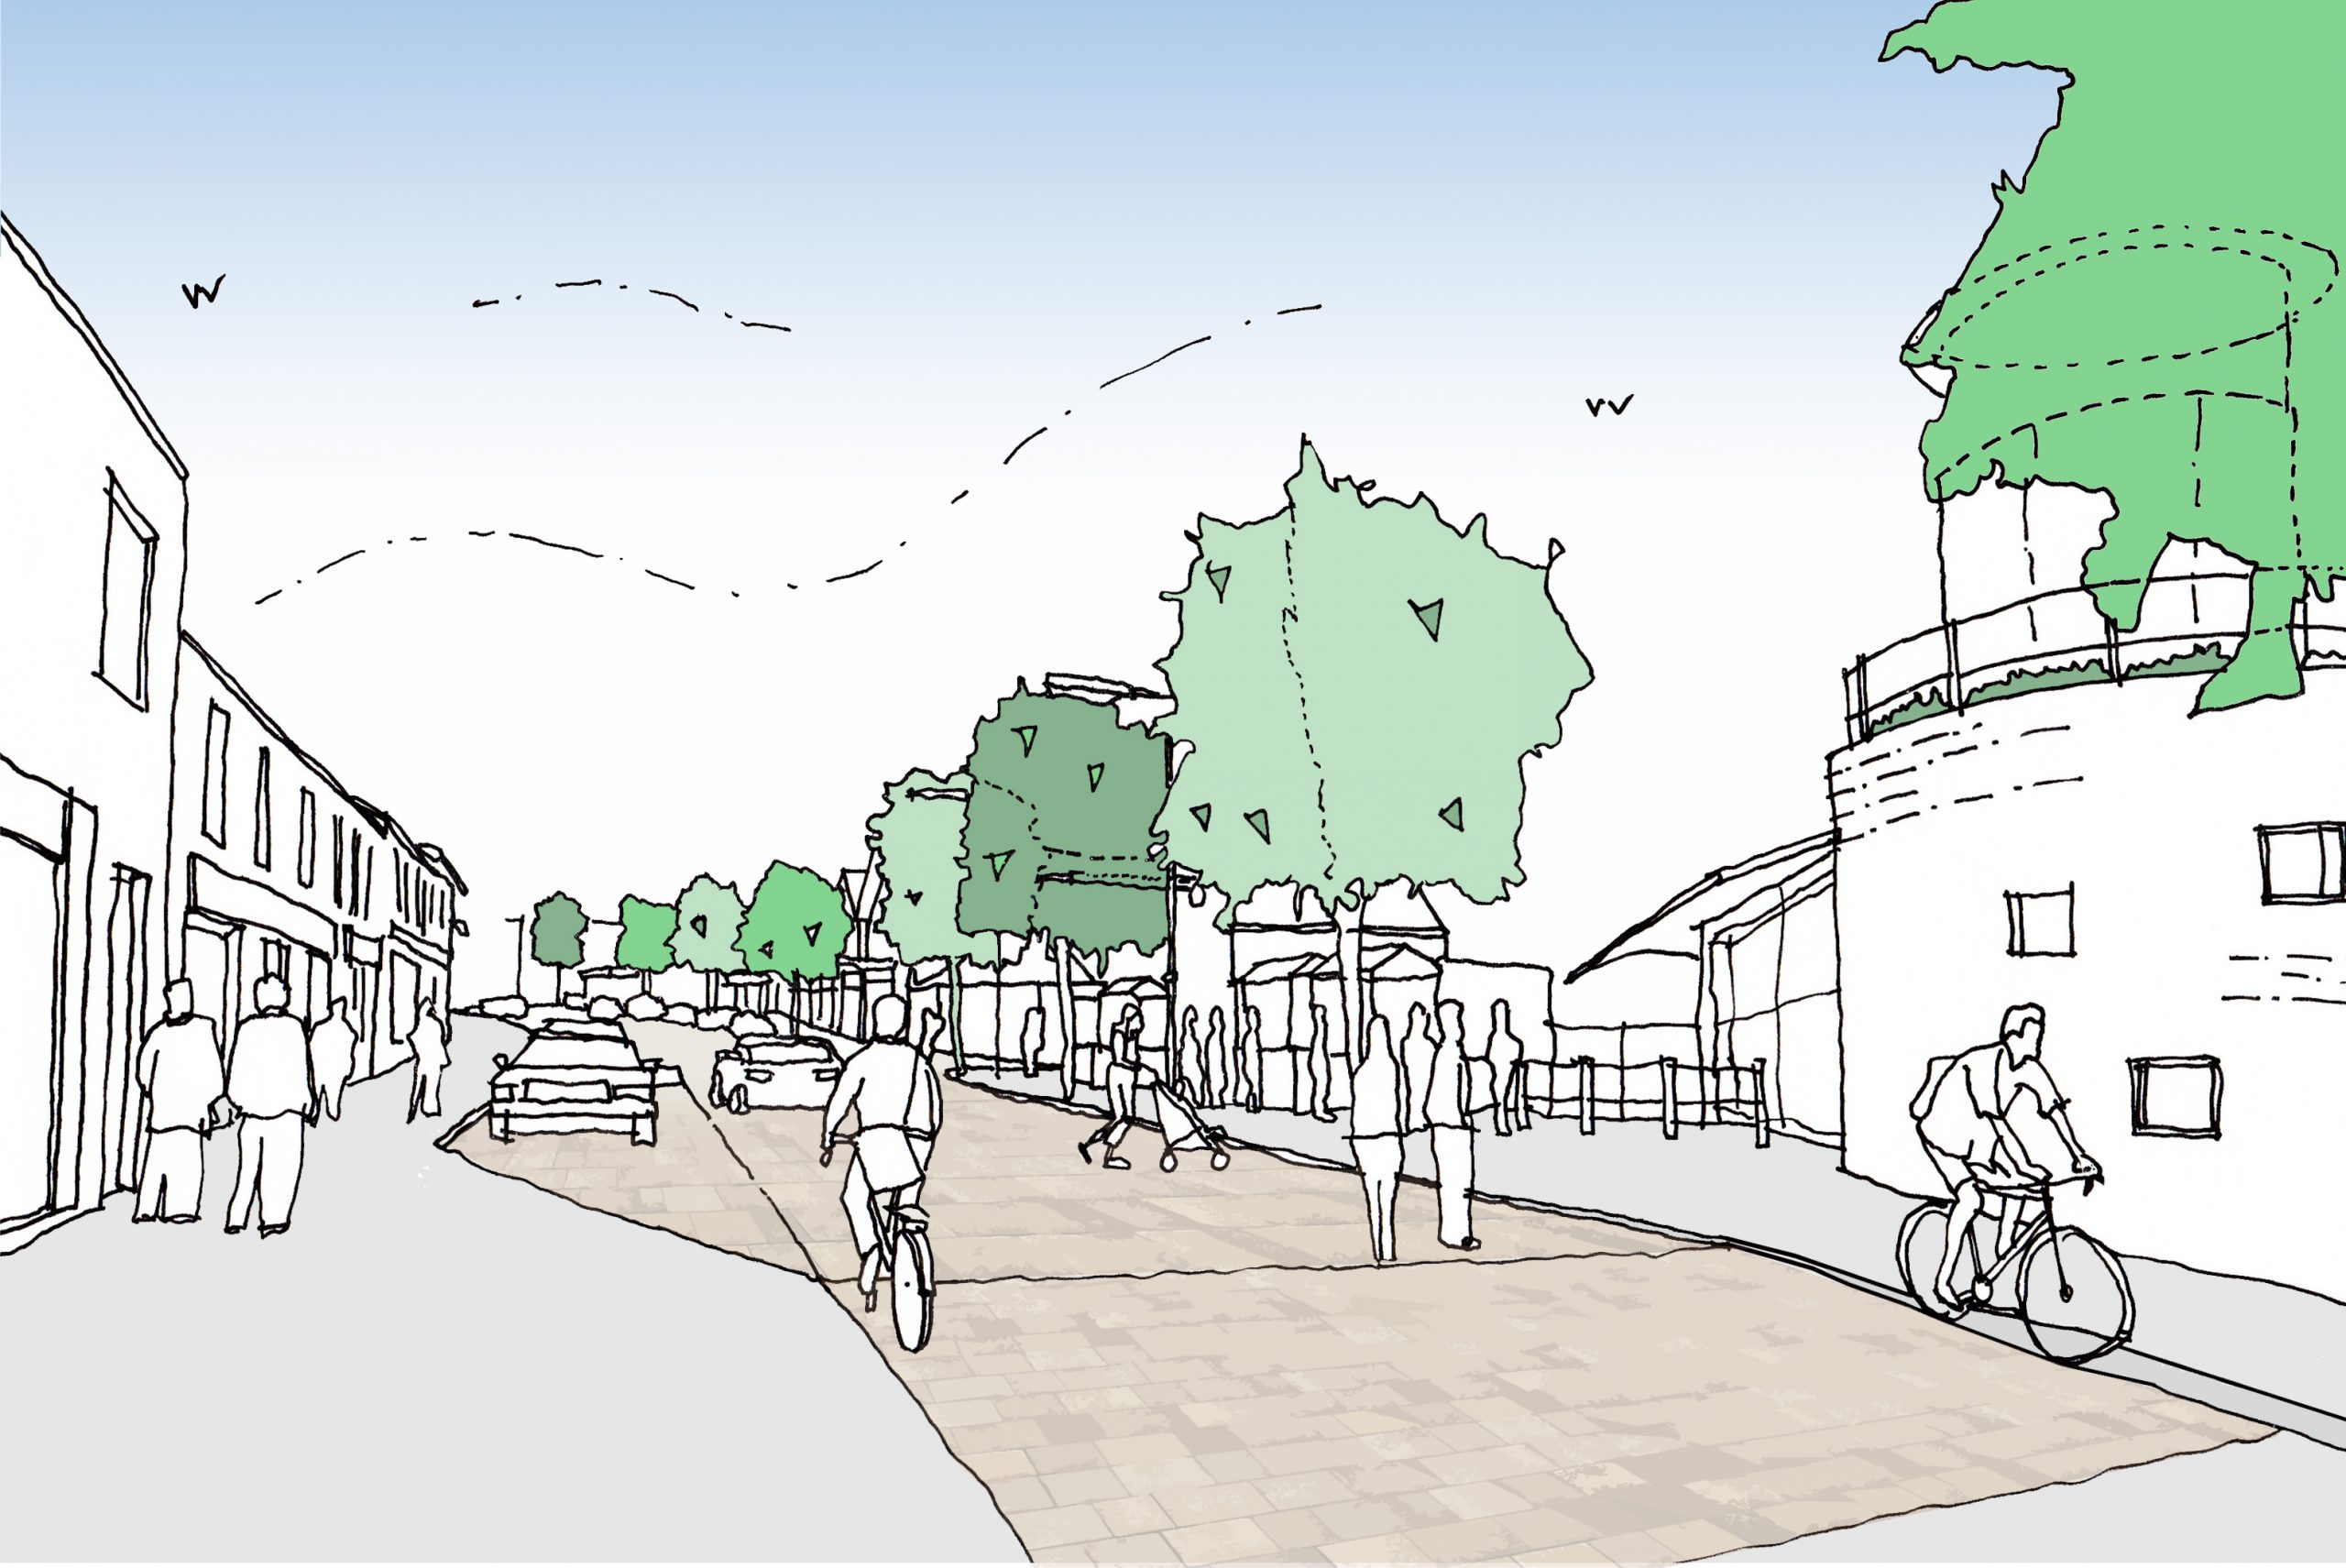 Artist interpretation of Cinderford High Street